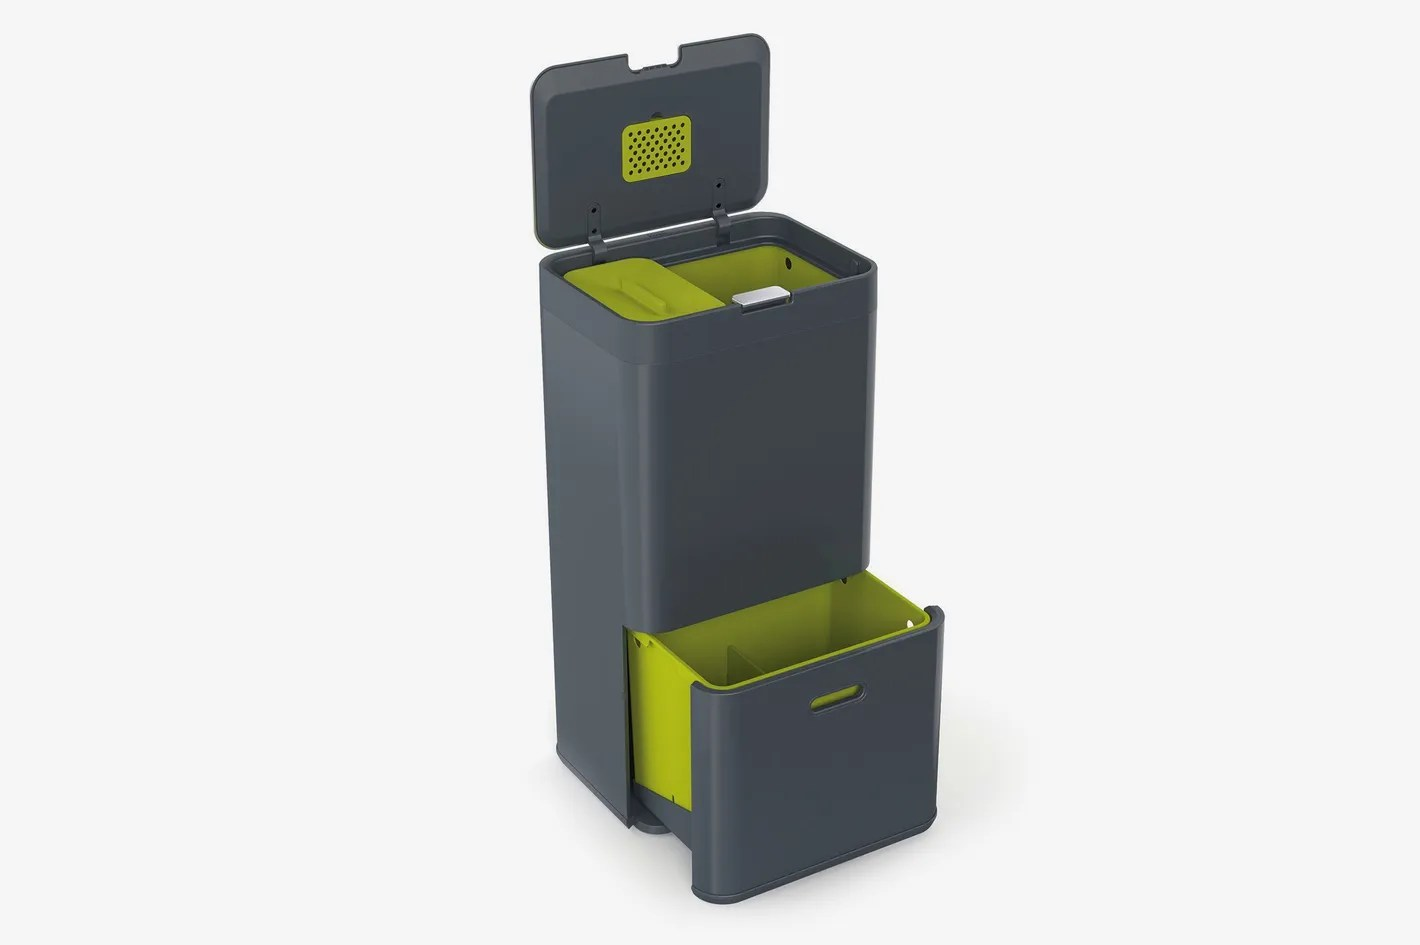 compost bin for kitchen white cabinets and backsplash 13 stylish bins your small 2018 joseph 30002 intelligent waste totem trash can recycle unit with